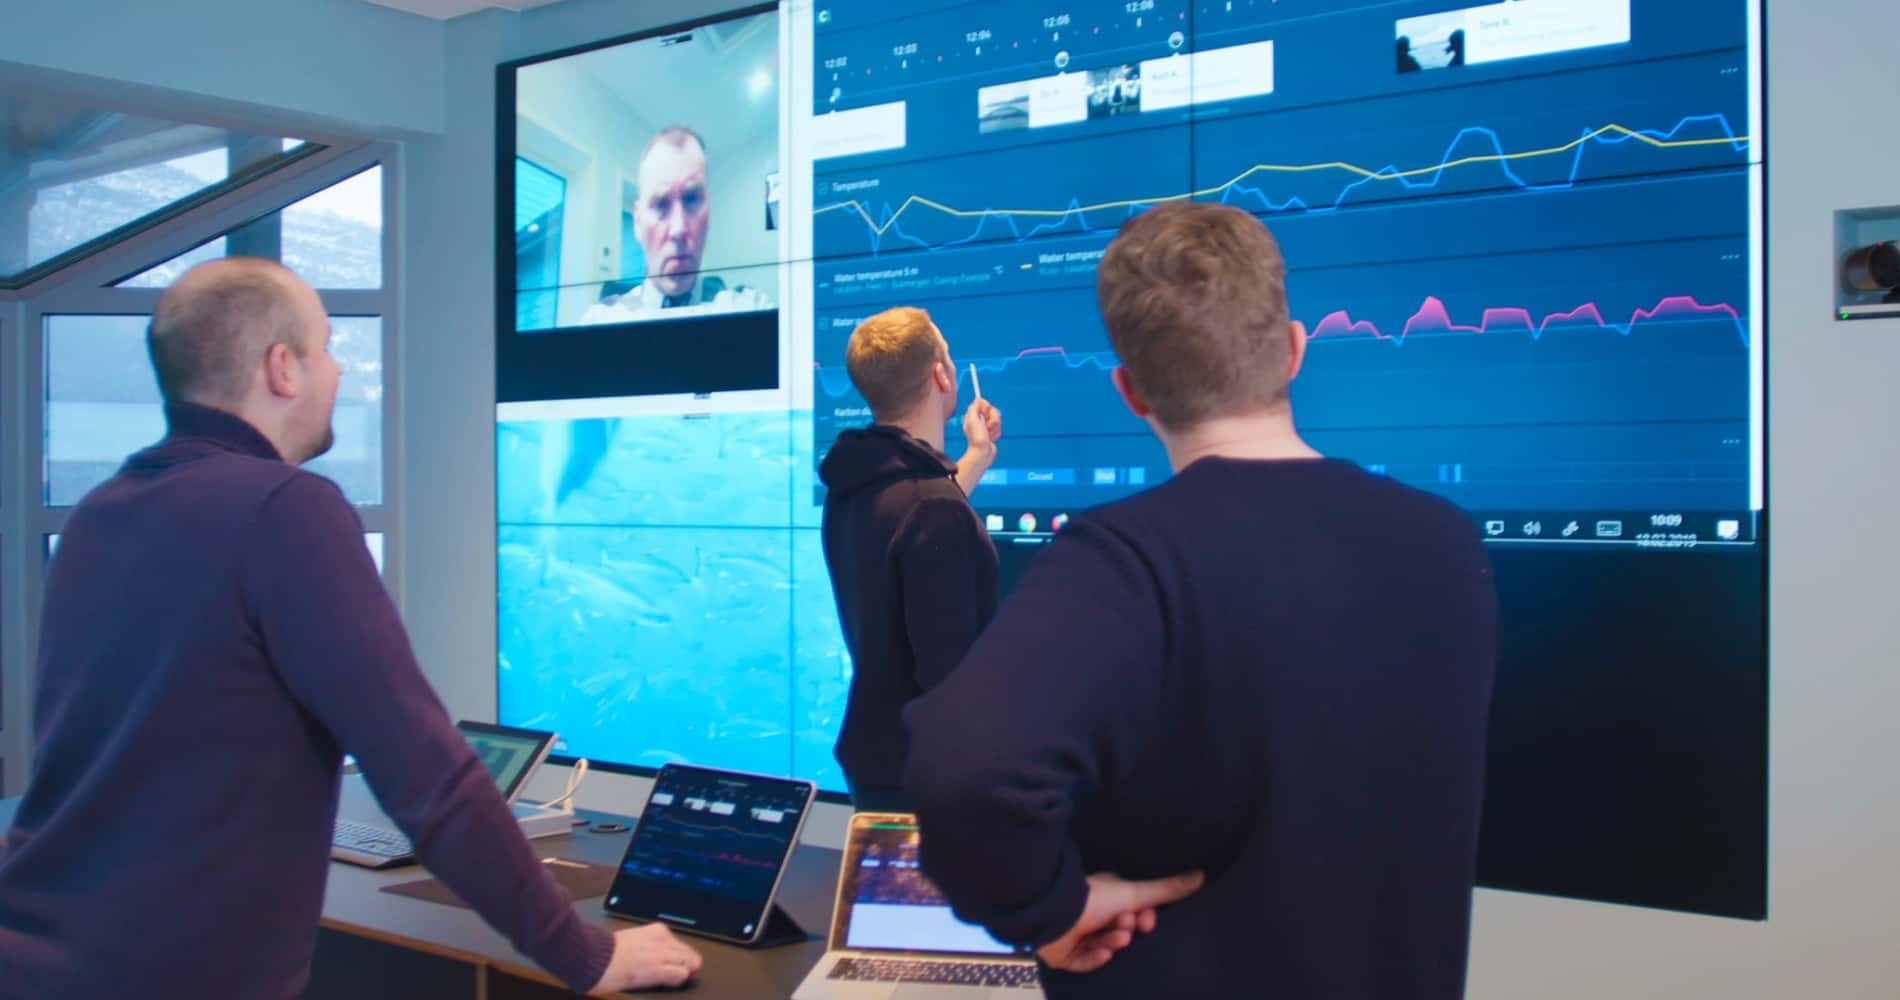 Three men looking at Clarify graphs displayed on a big screen at Eide Fjordbruk office